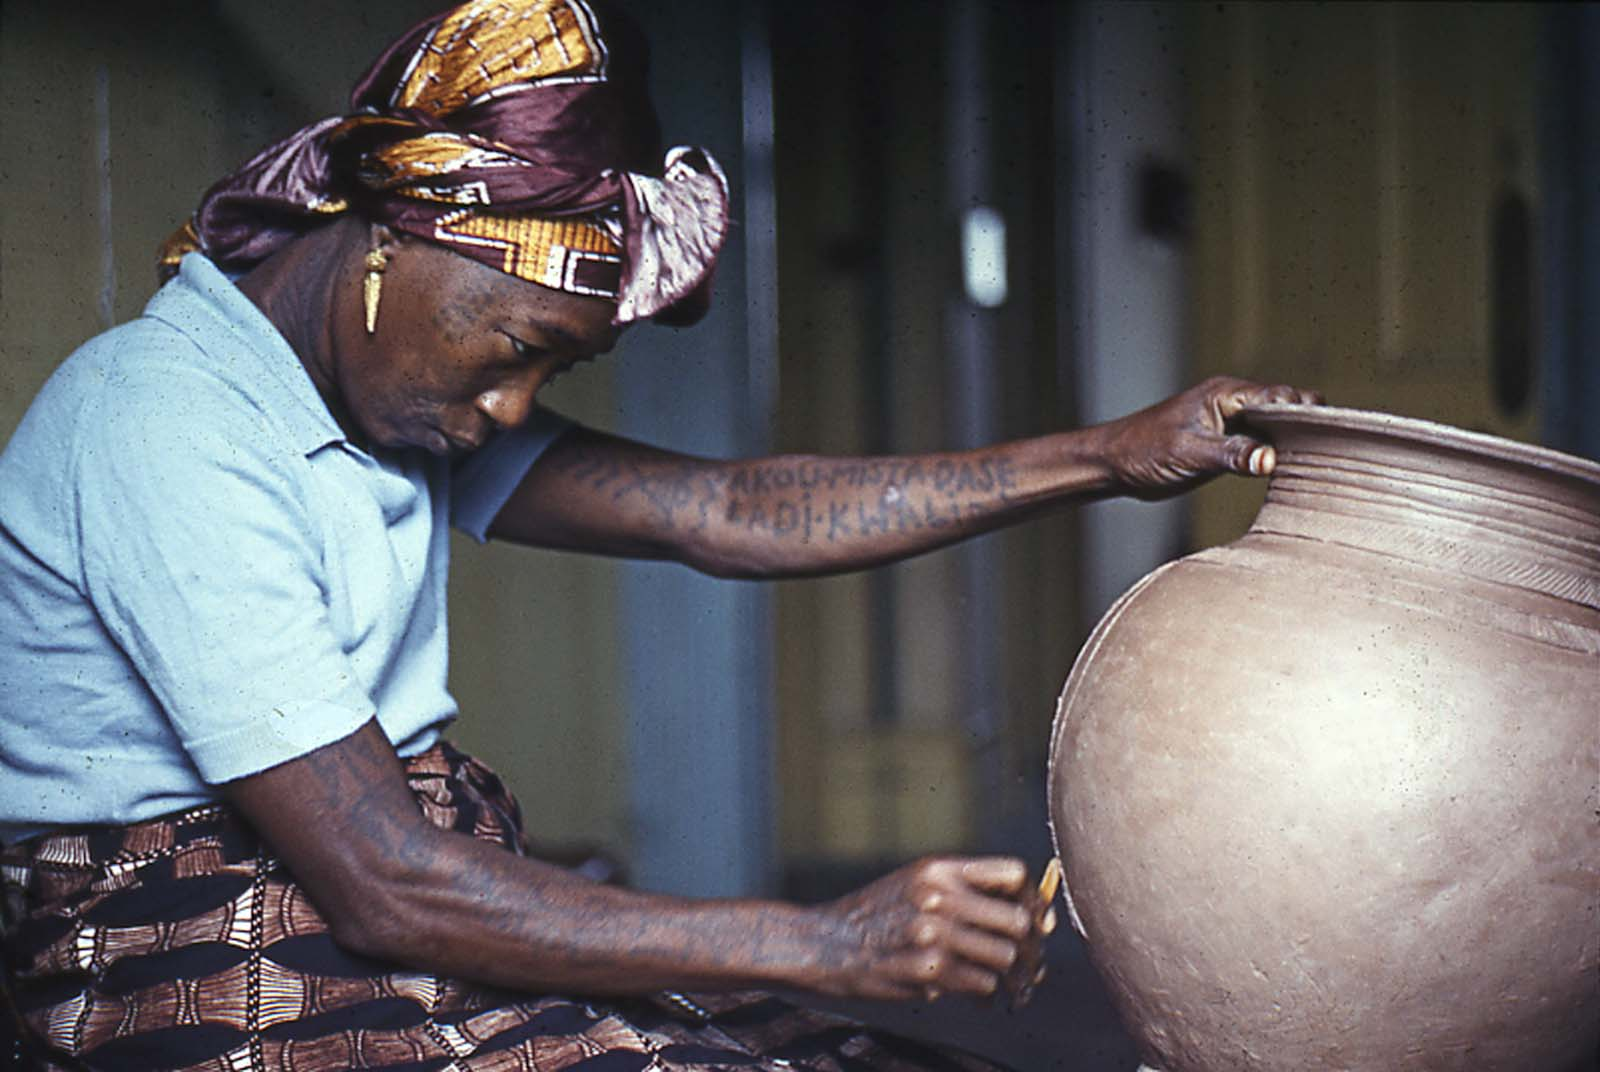 photo of an African woman adding decoration to the outside of a pot